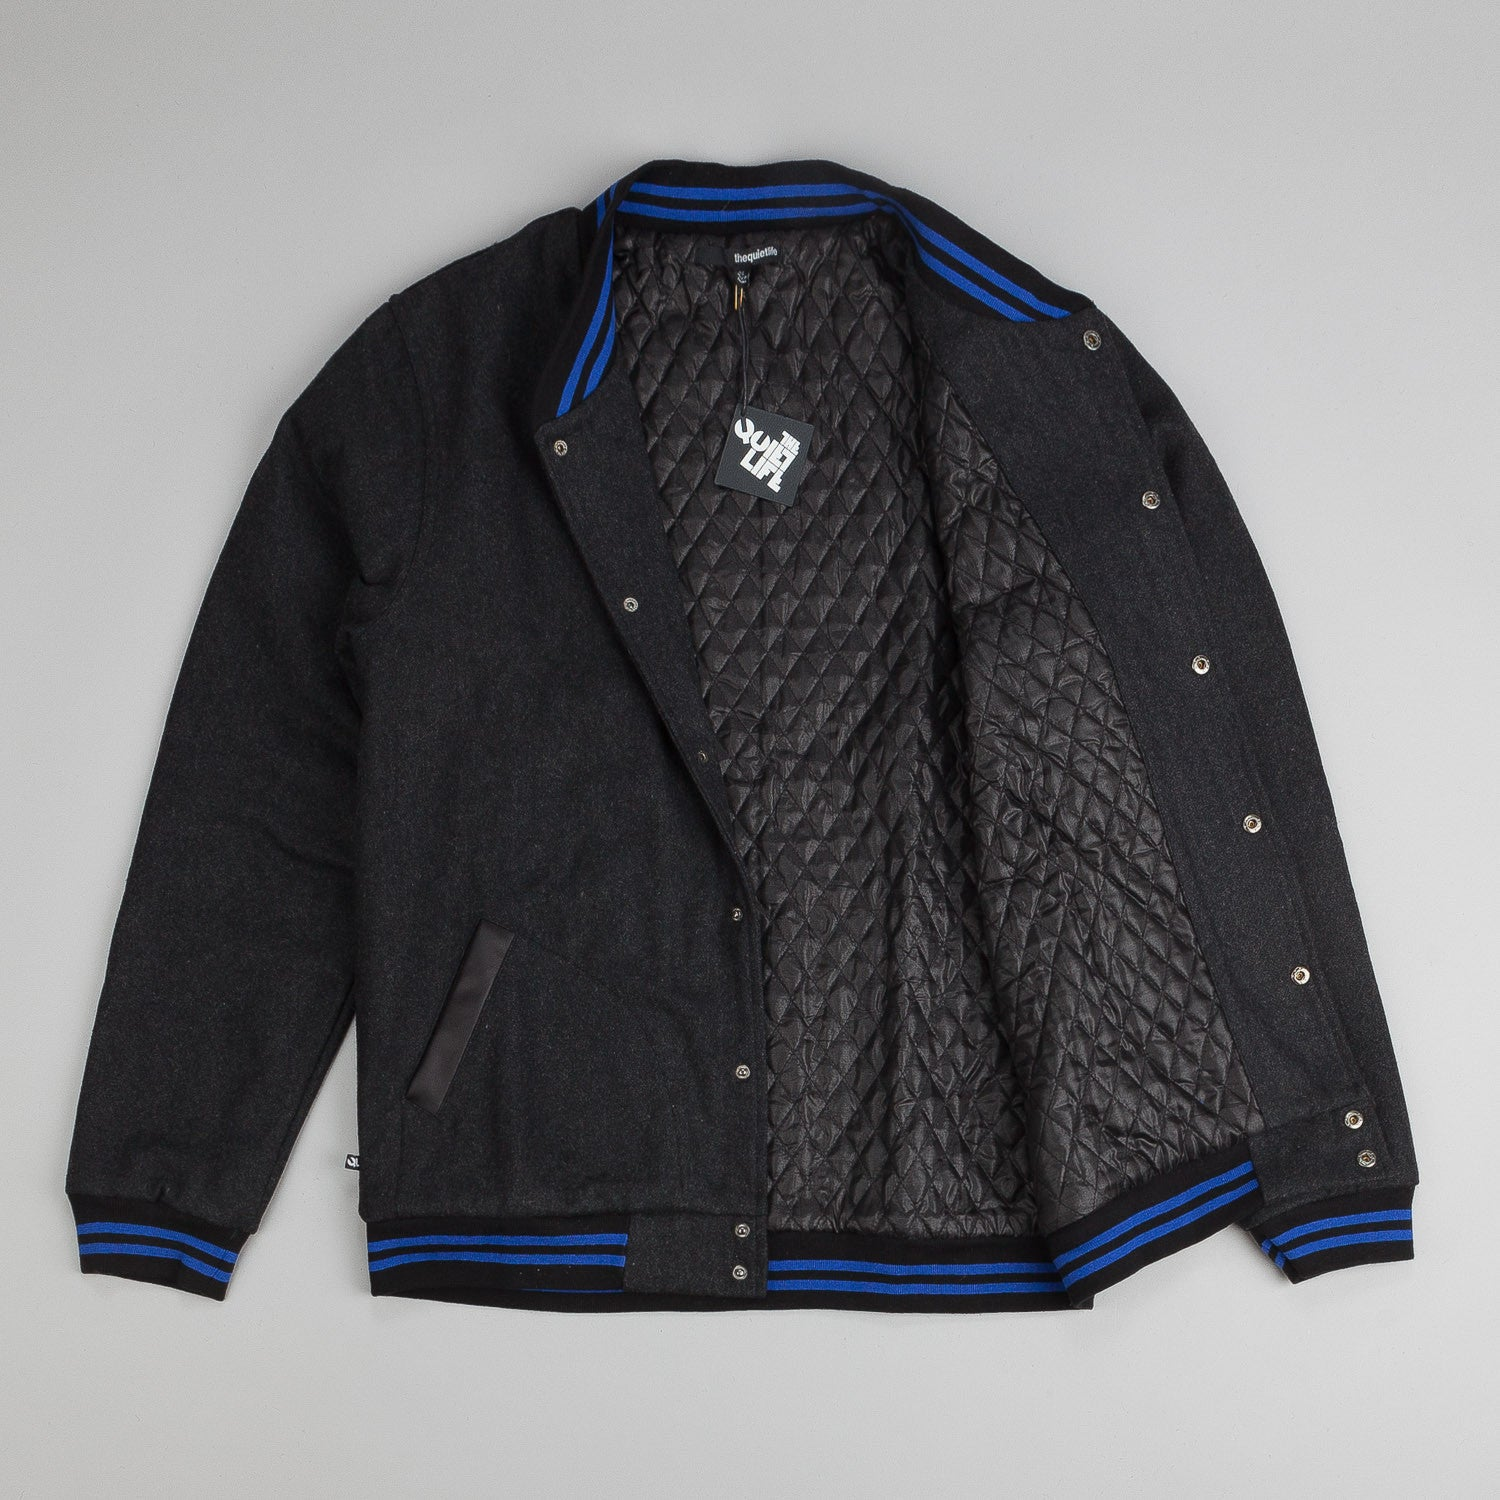 The Quiet Life Wool Coach Jacket - Black / Blue